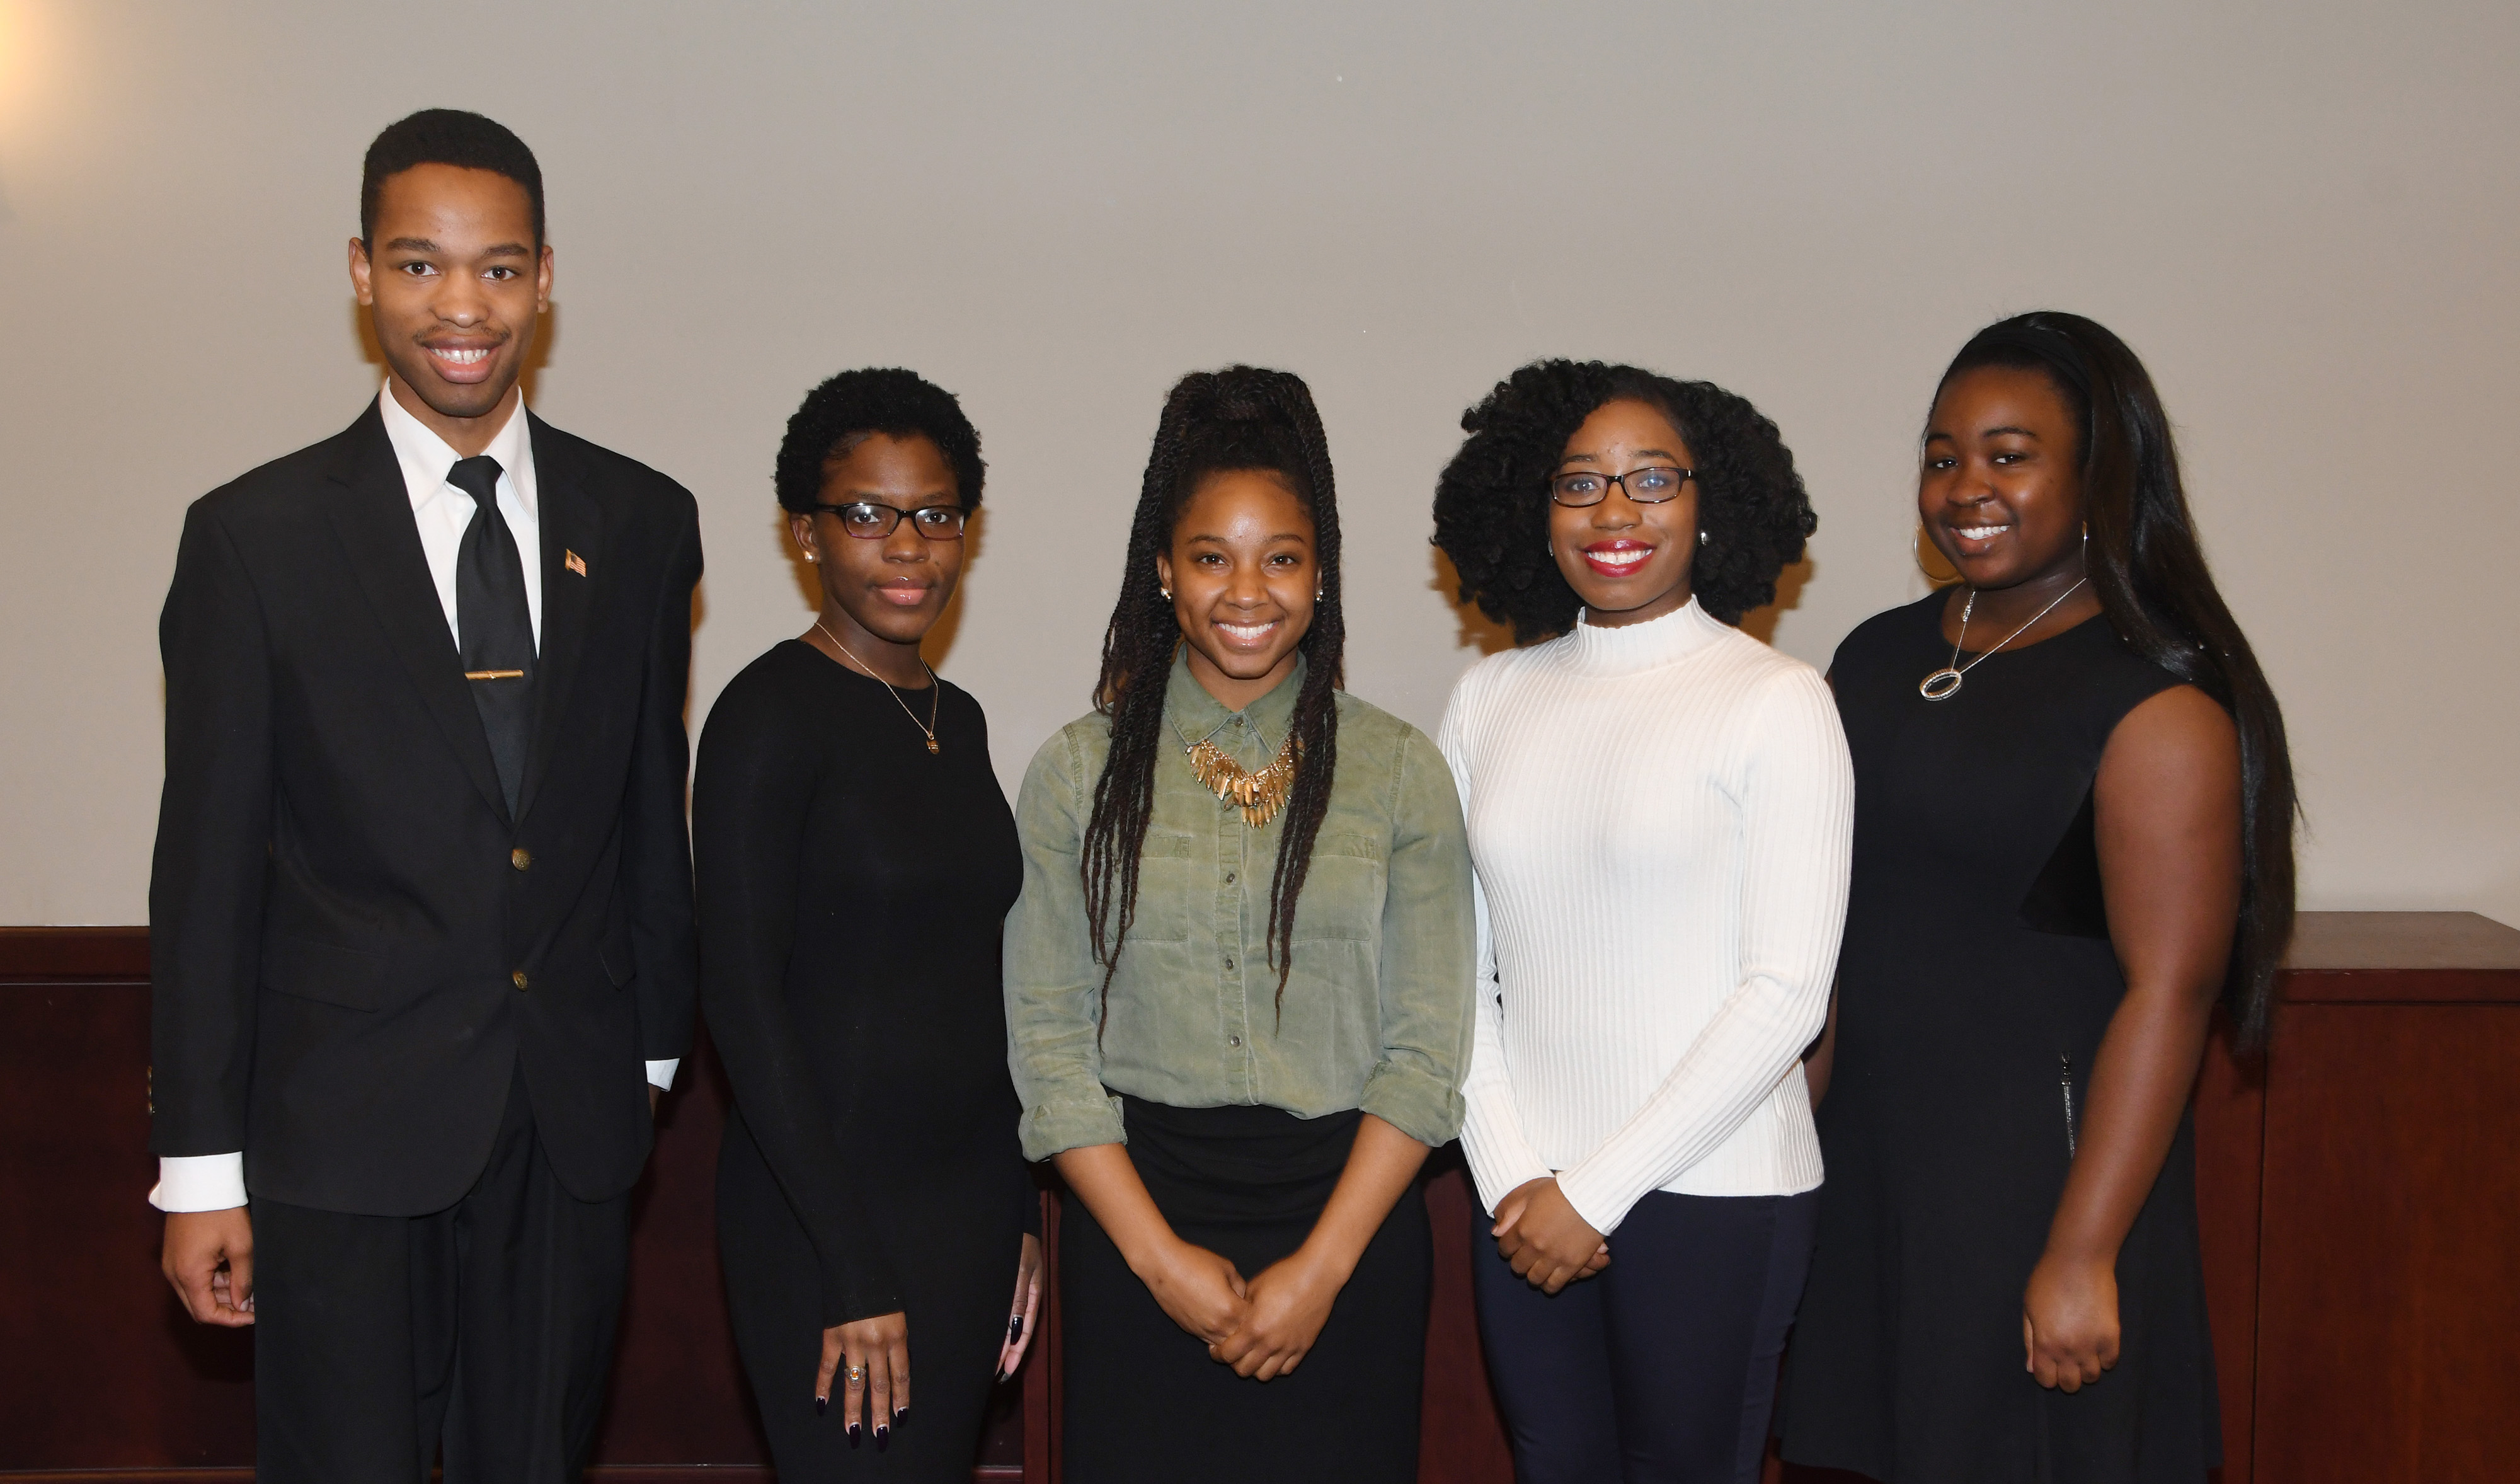 Delaware State University winners at a recent Philadelphia AMP research competition: (l-r) 1st Place Winners Joshua Patterson and Destiny J. Davis; 3rd Place Winner Erykah Leno; and Honorable Mentions Malia Green and Aysiah Stamper. Not pictured is 3rd Place Winner Norwoh Kemokai.